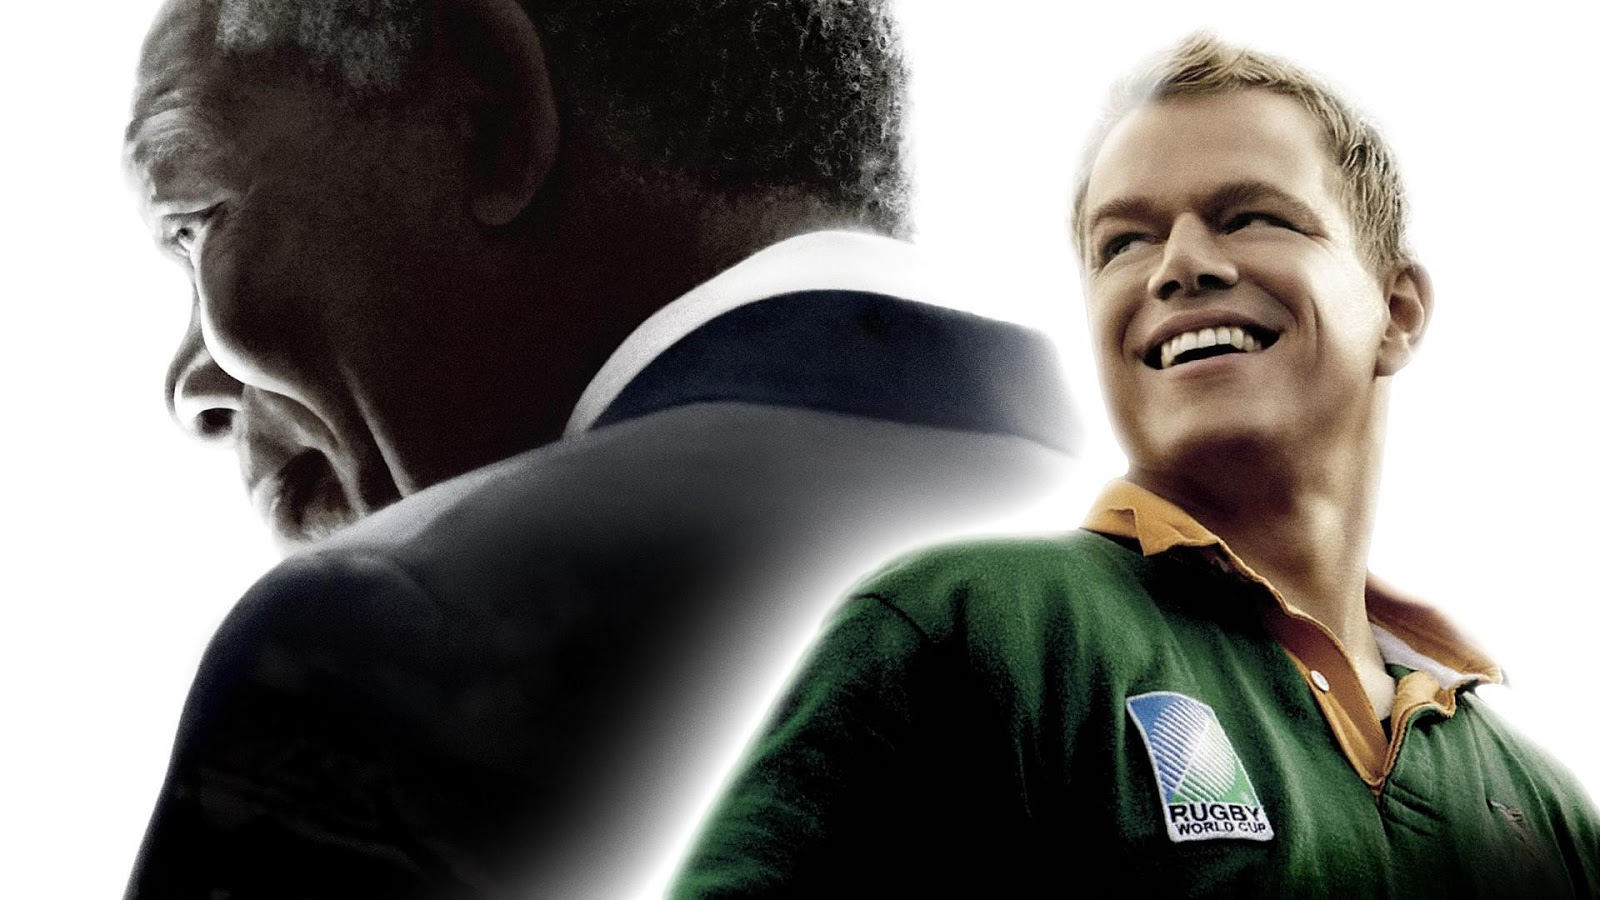 analysis of leadership in the film invictus Best part of story, including ending: this is a terrific story, but eastwood's direction is too dry and humorless, and as a result the film on the whole comes across stiff.